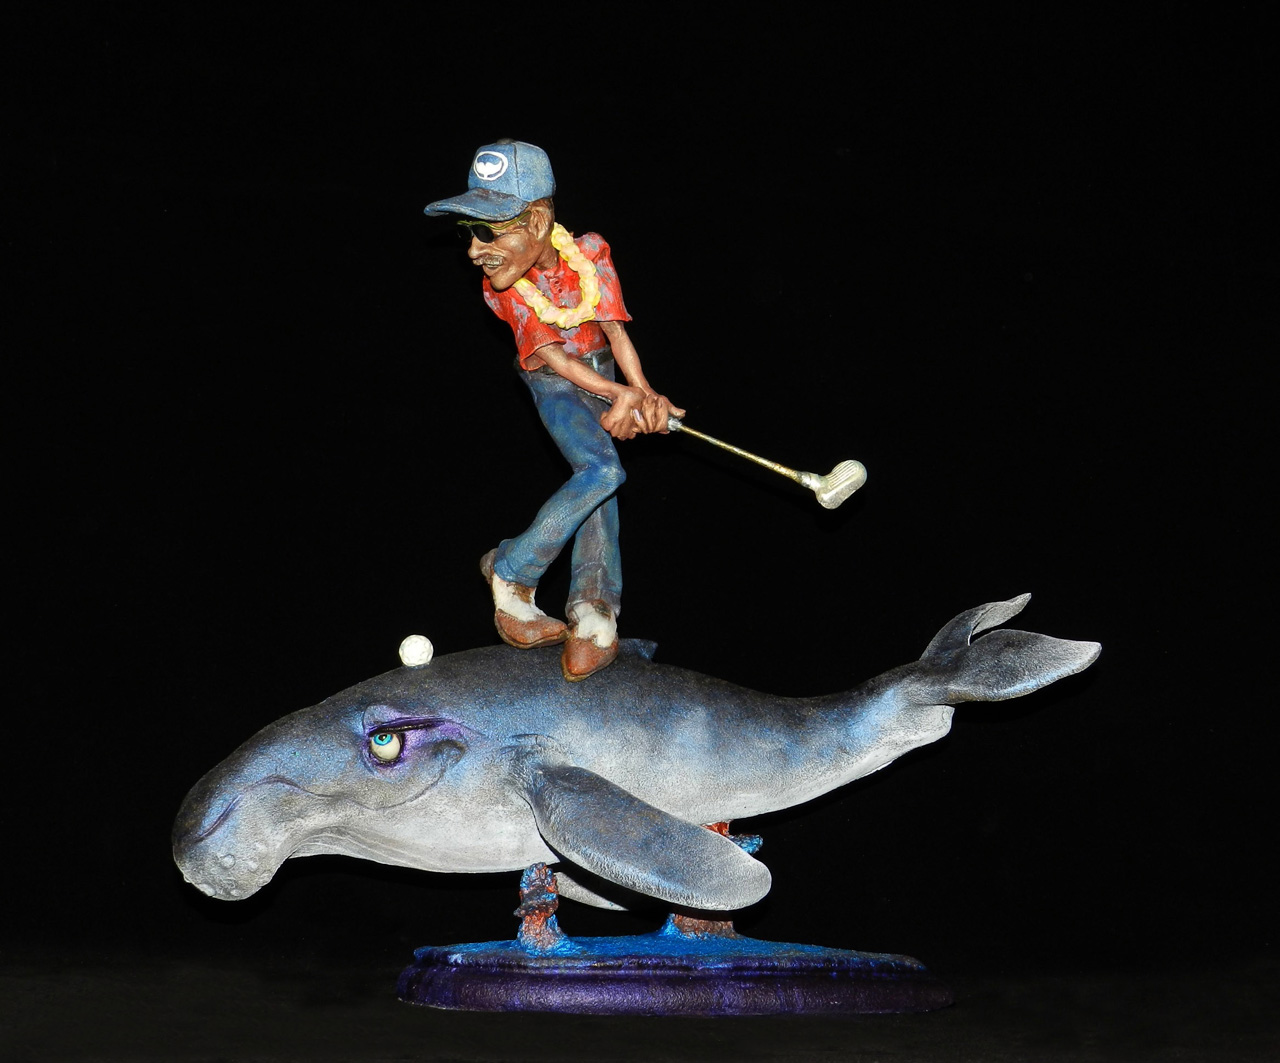 Water Hazard by Steven Lee Smeltzer cartoonish whimsical clay sculpture of golfer on whale